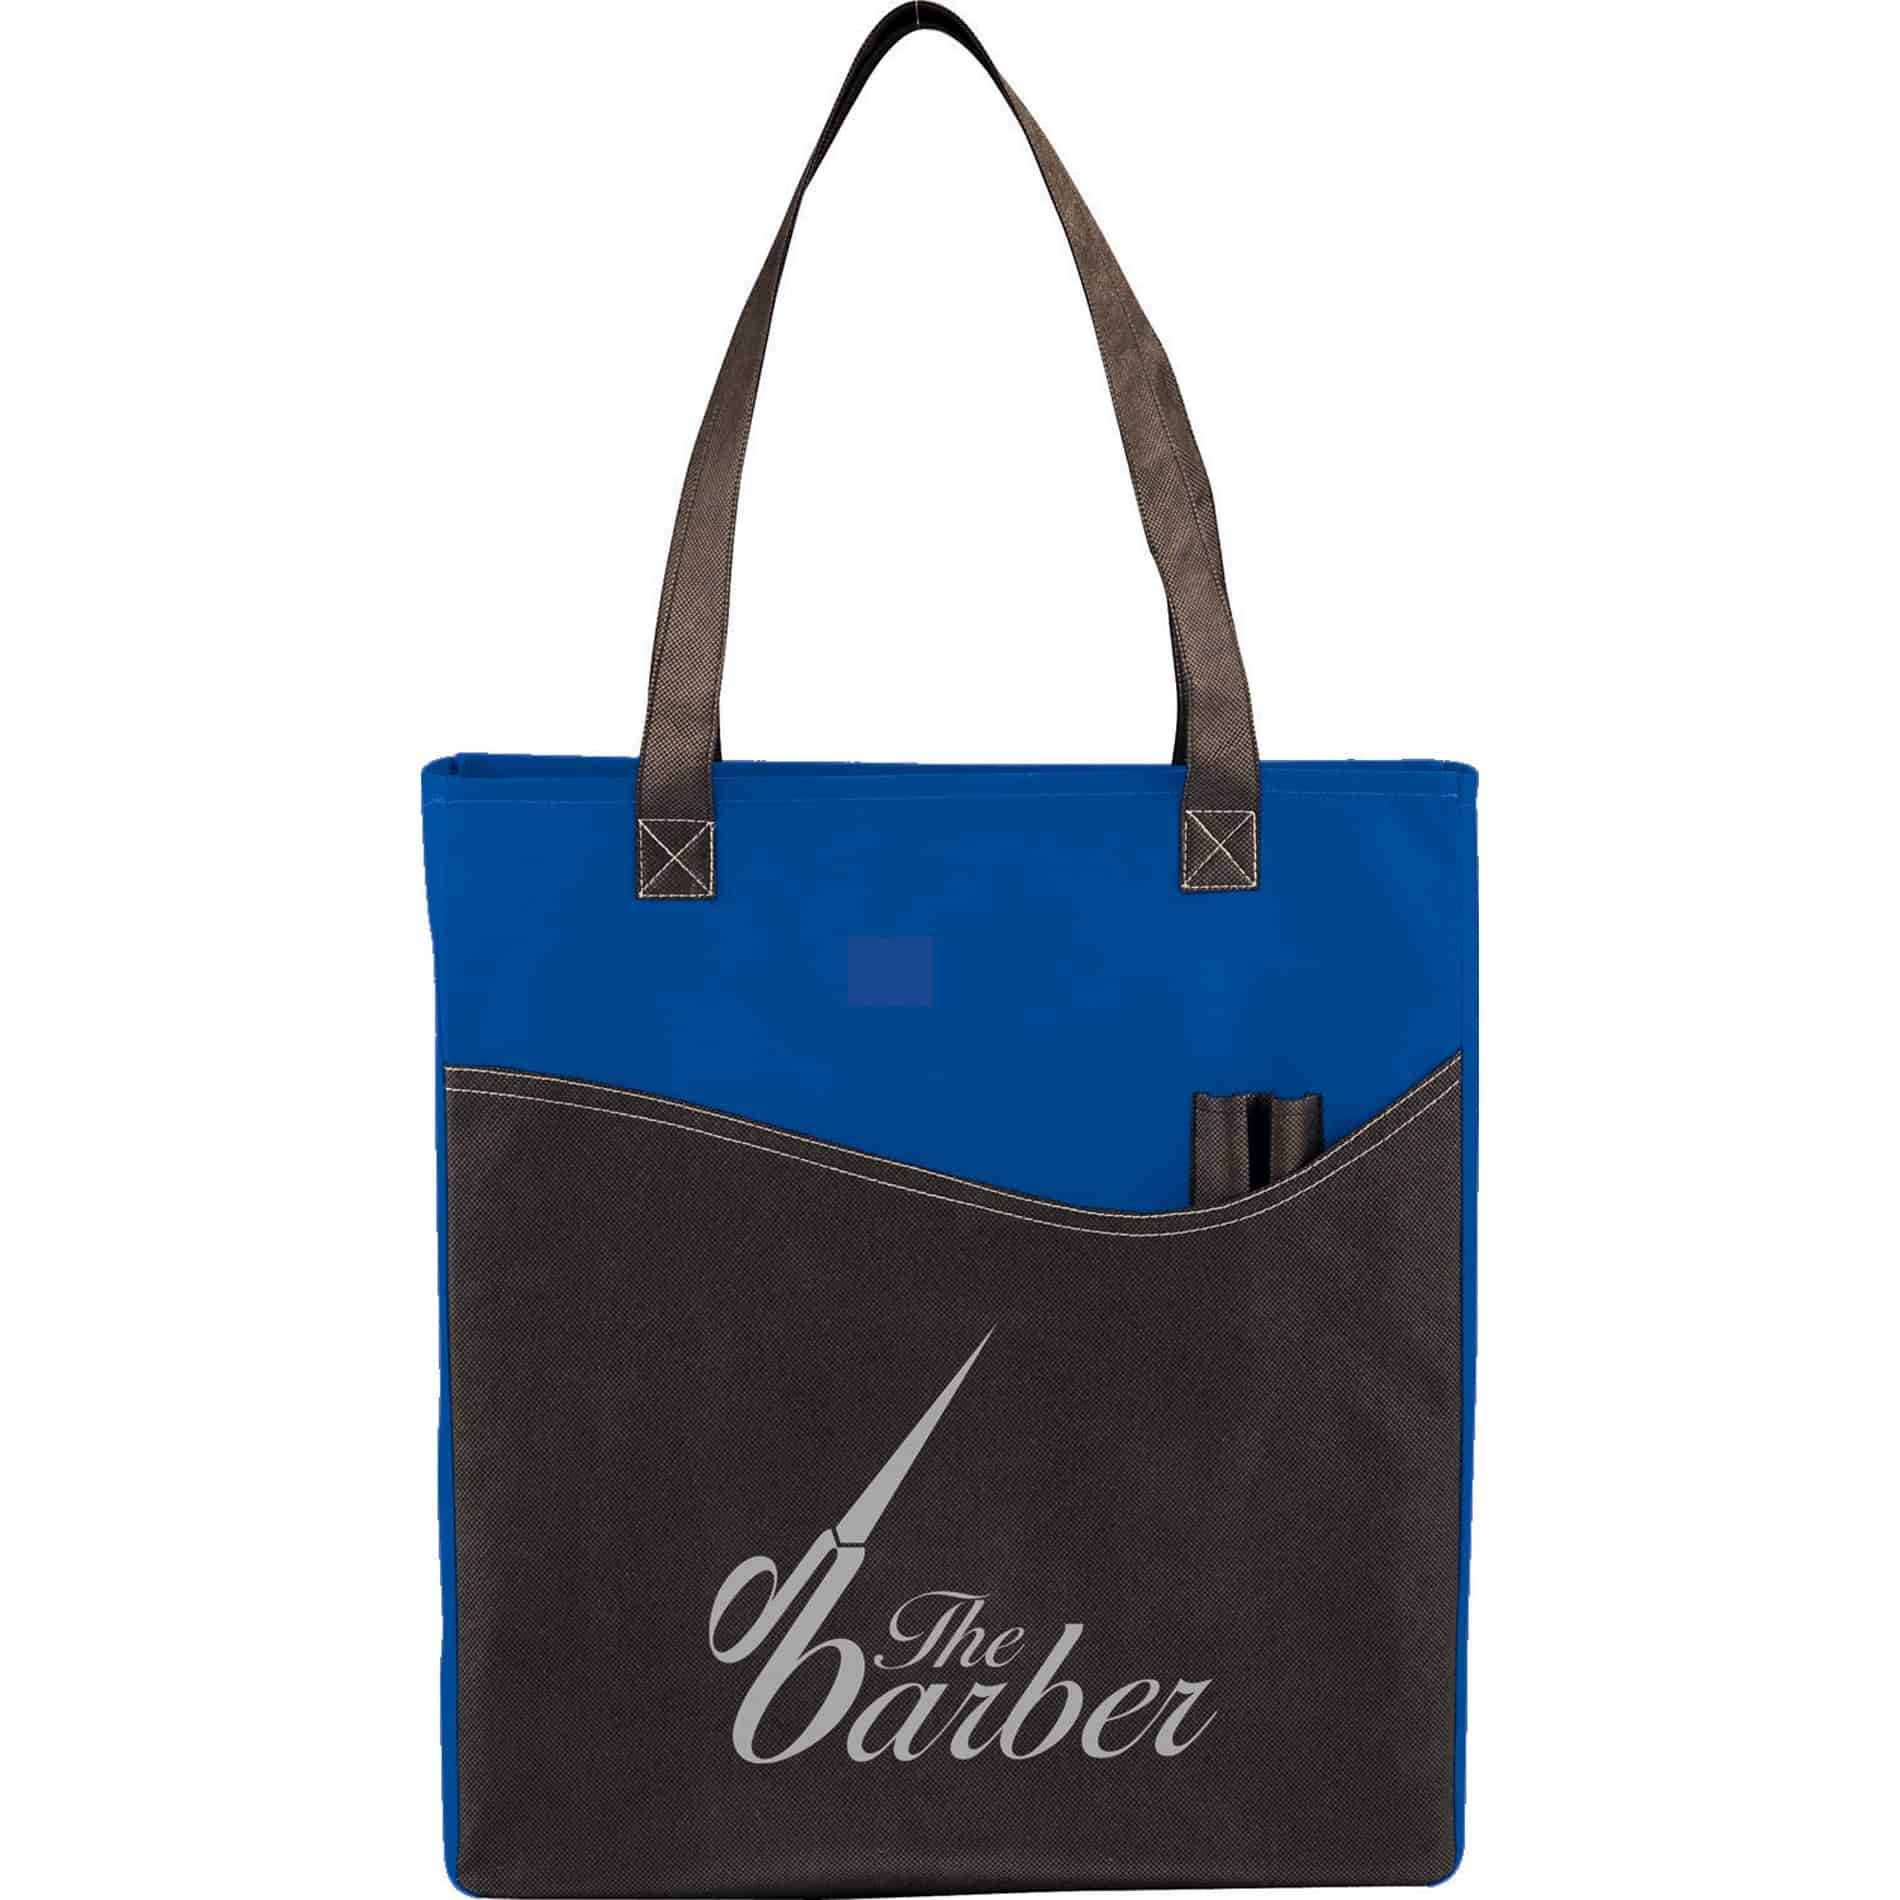 River Pocket Convention Totes Convention Tote Bags Bag